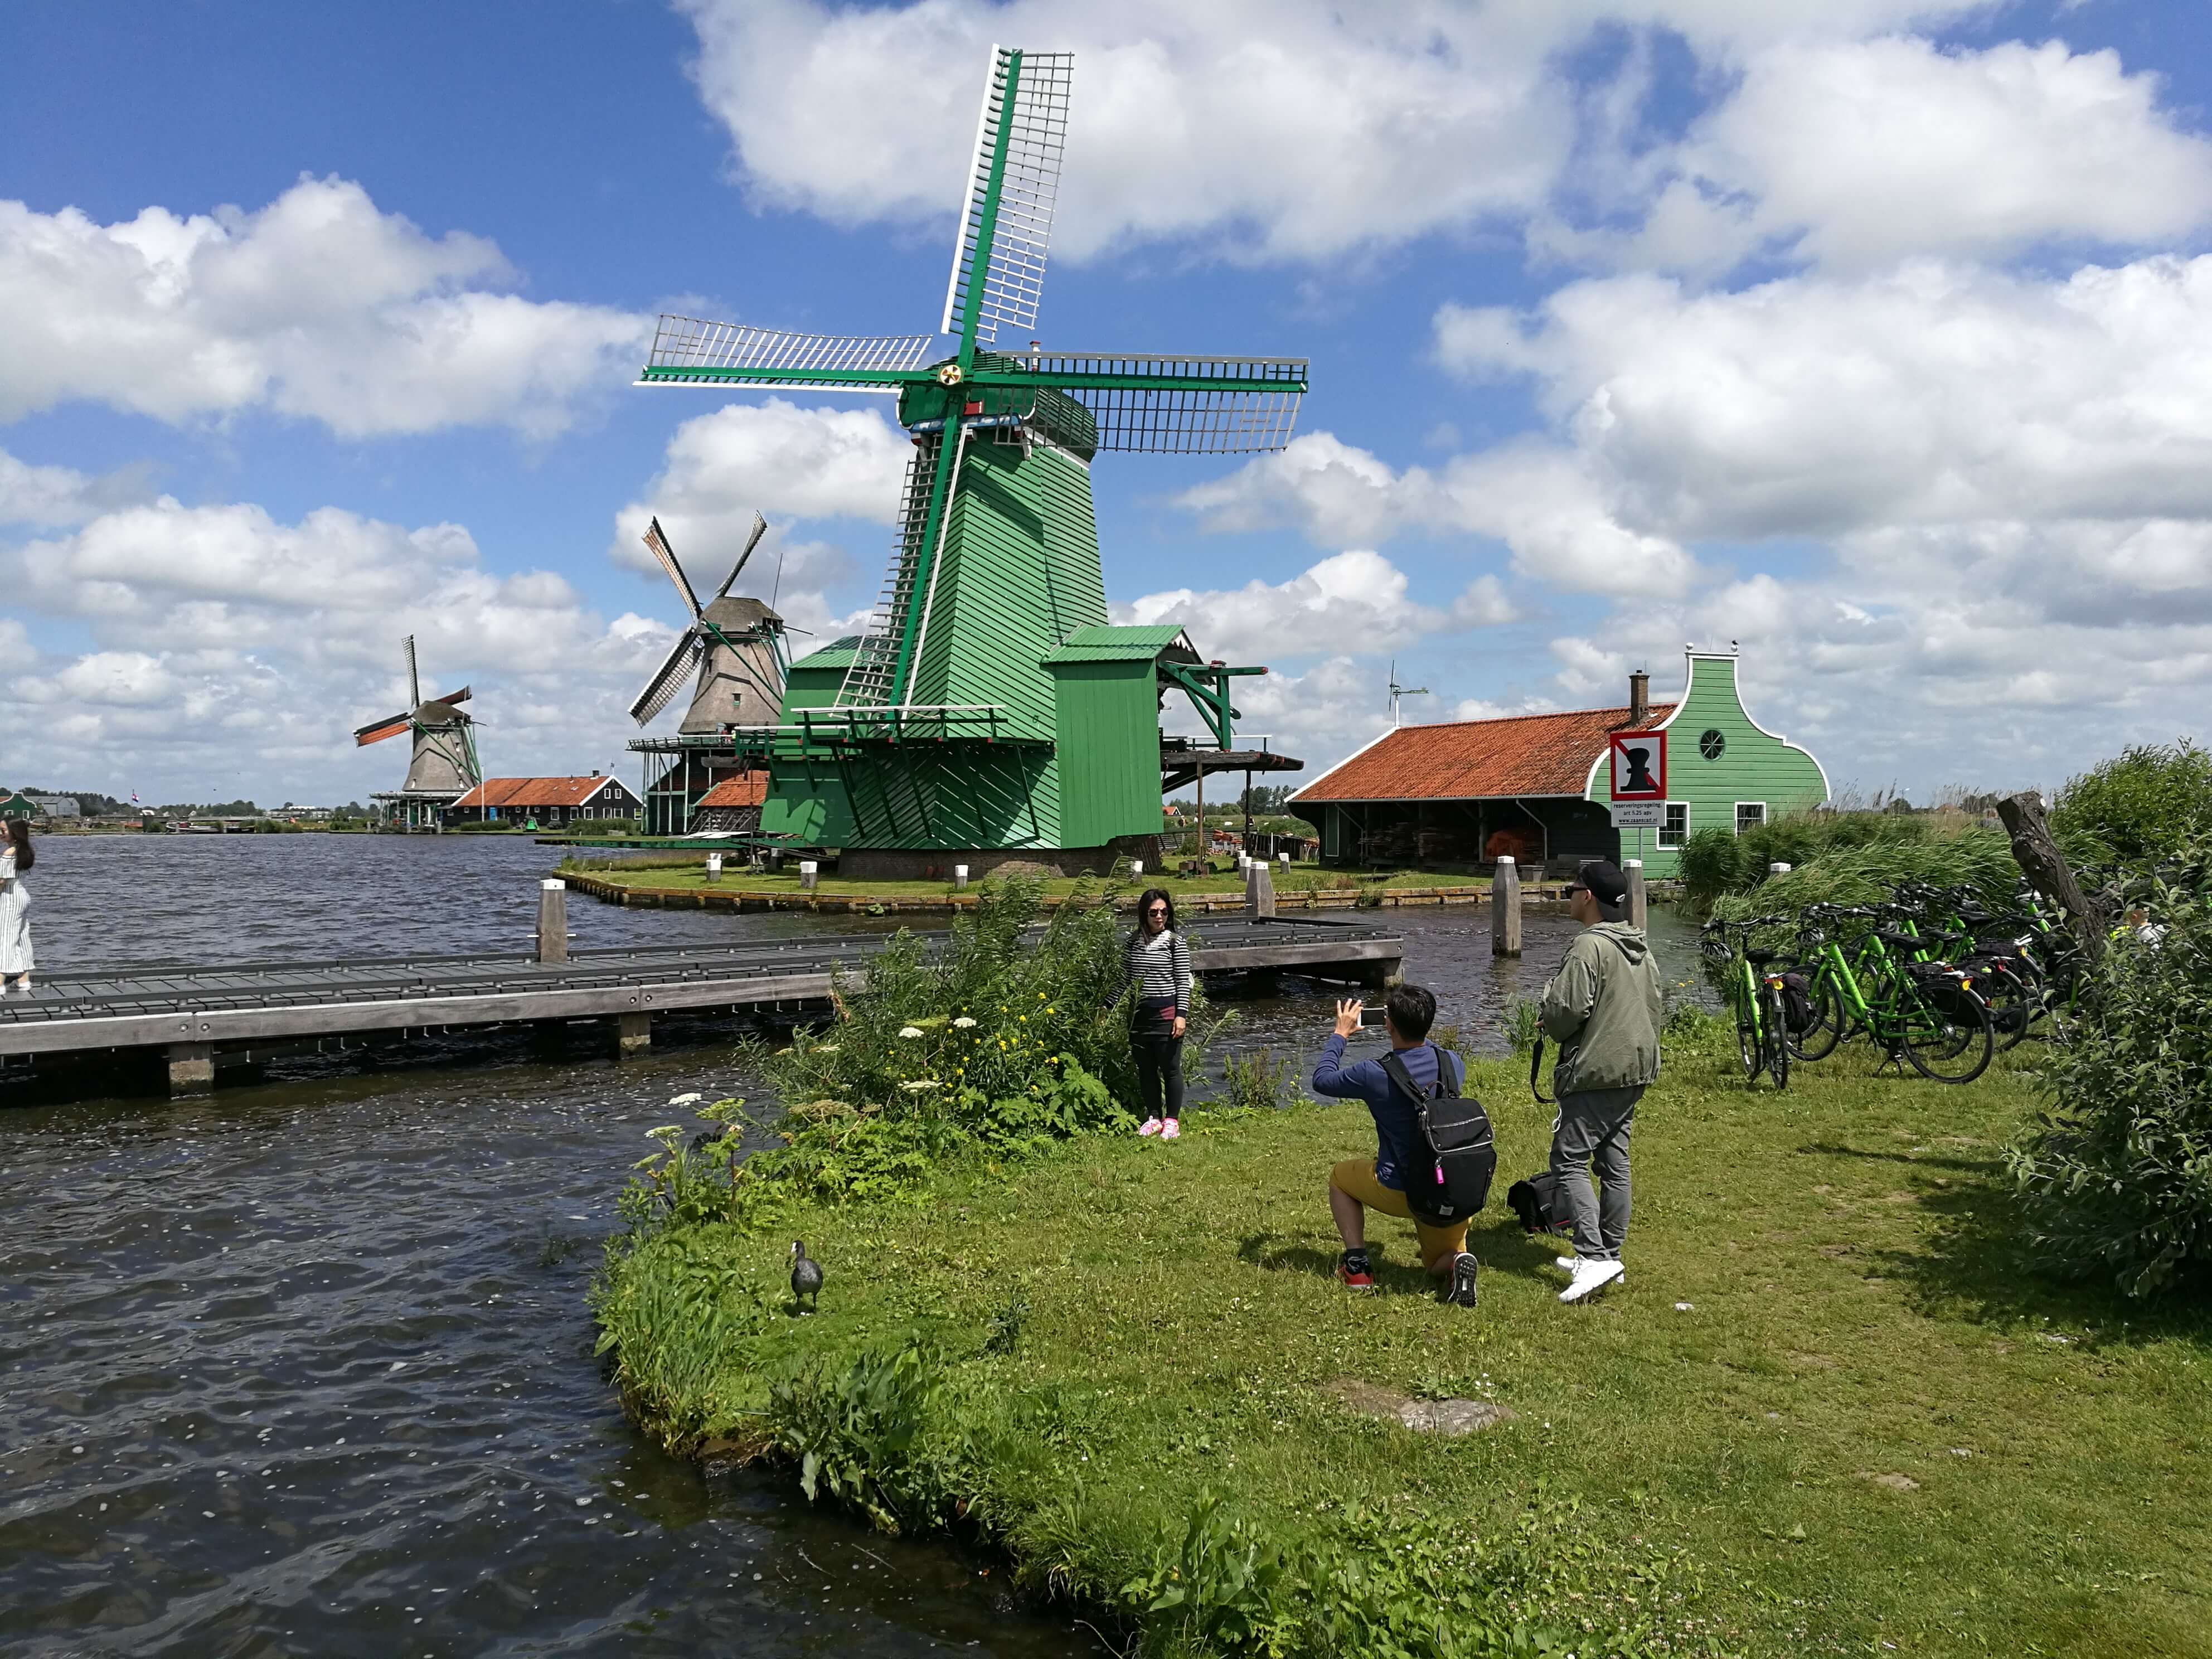 Tourists taking pictures of the famous Zaanse Schans view near Amsterdam.